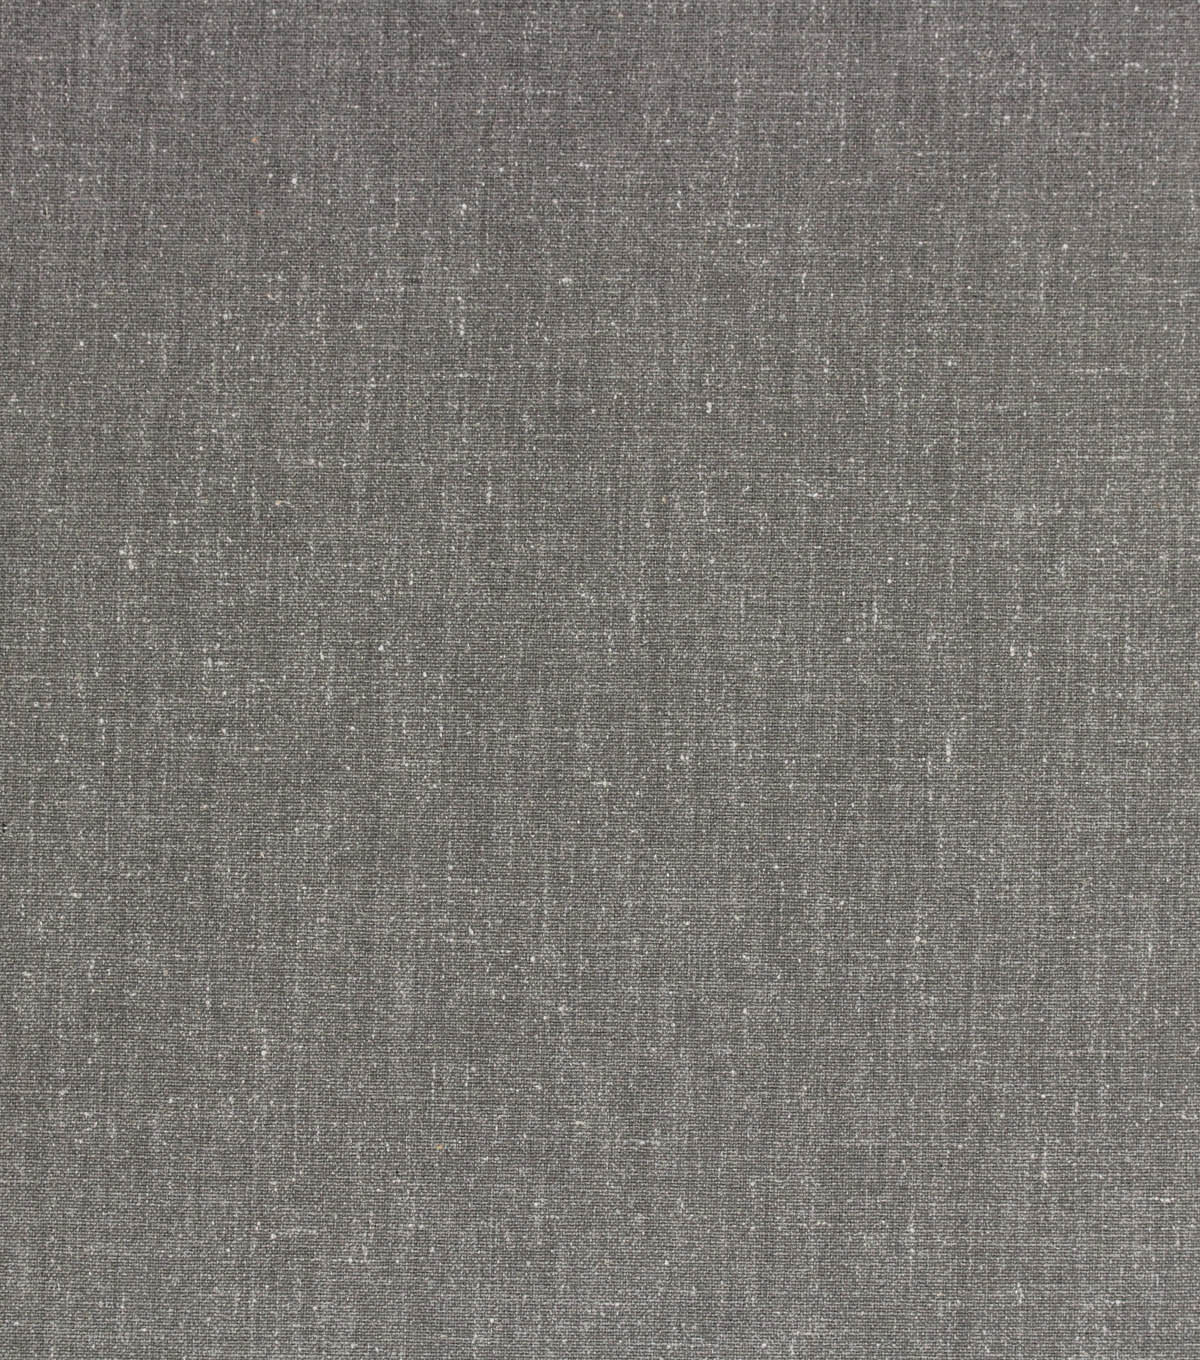 Richloom Studio Multi-Purpose Decor Fabric 58\u0027\u0027-Charcoal Alero